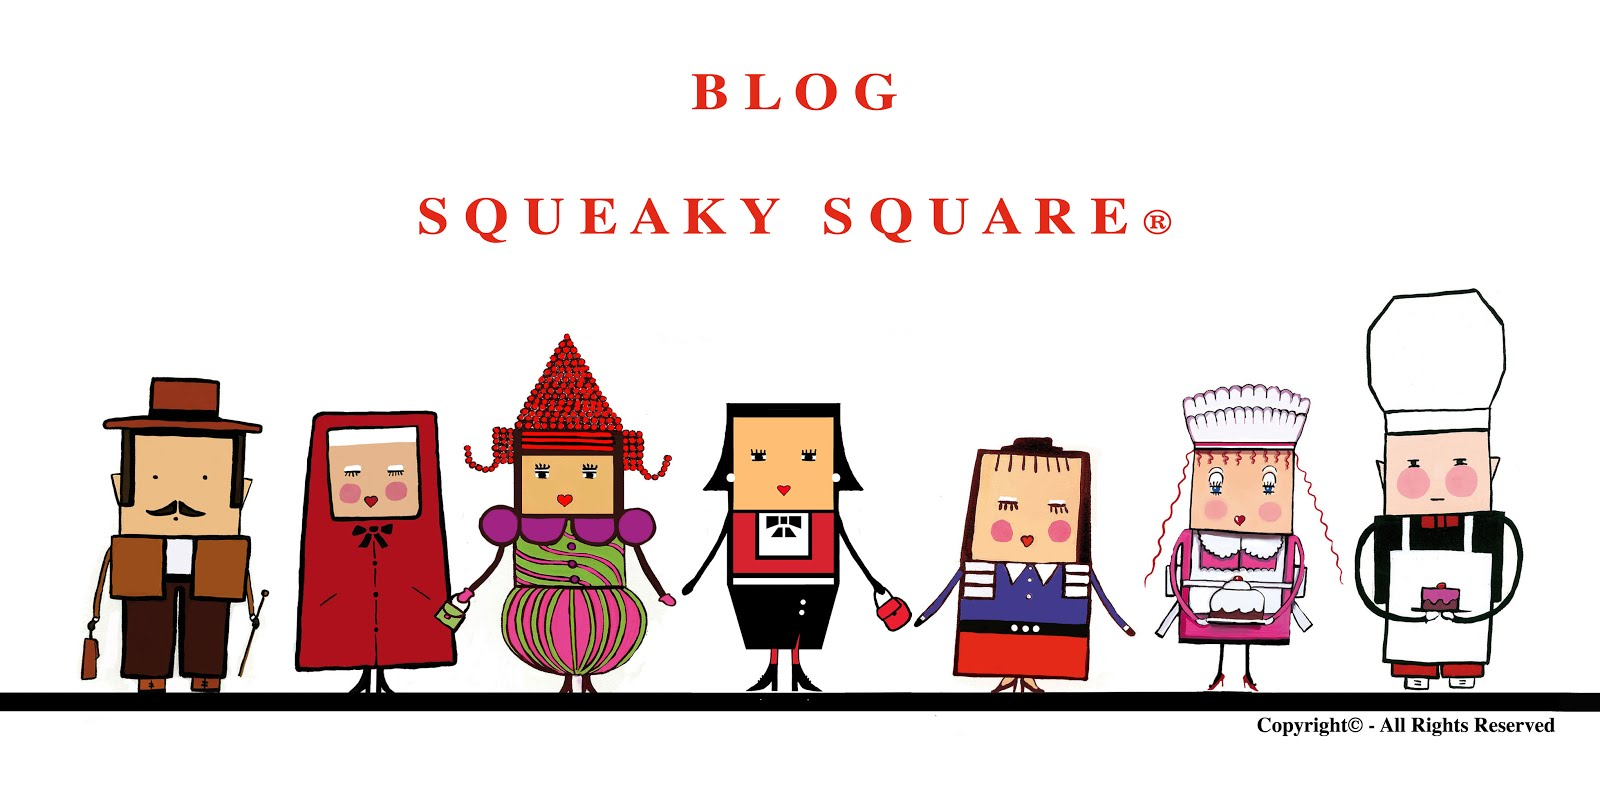 BLOG SQUEAKY SQUARES